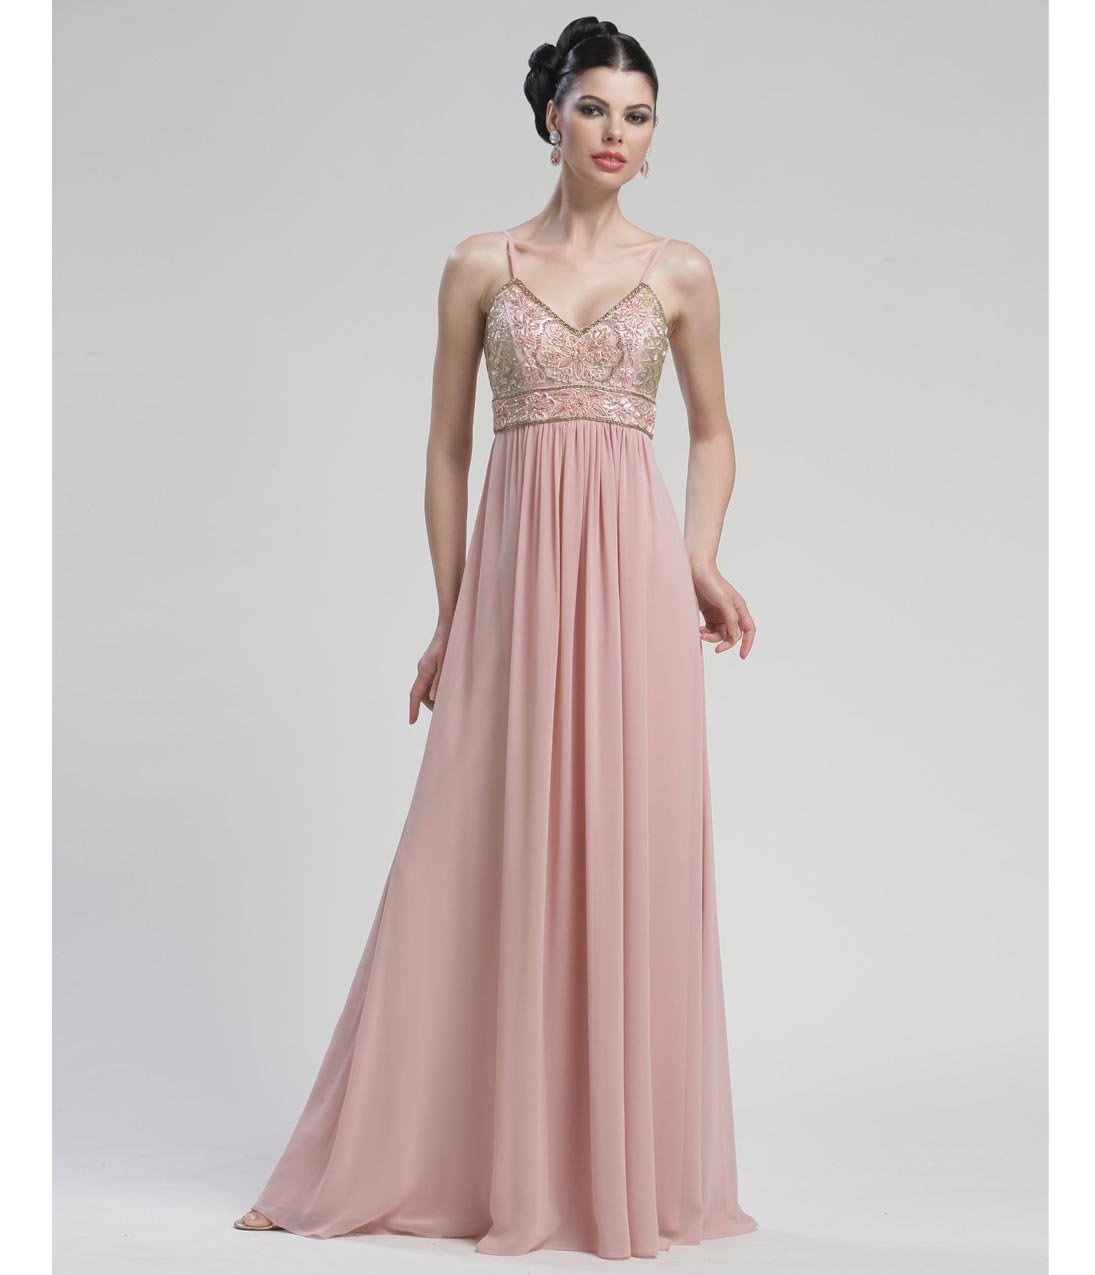 Grecian Prom Dresses 2013 Grecian Rose Empire Wa...